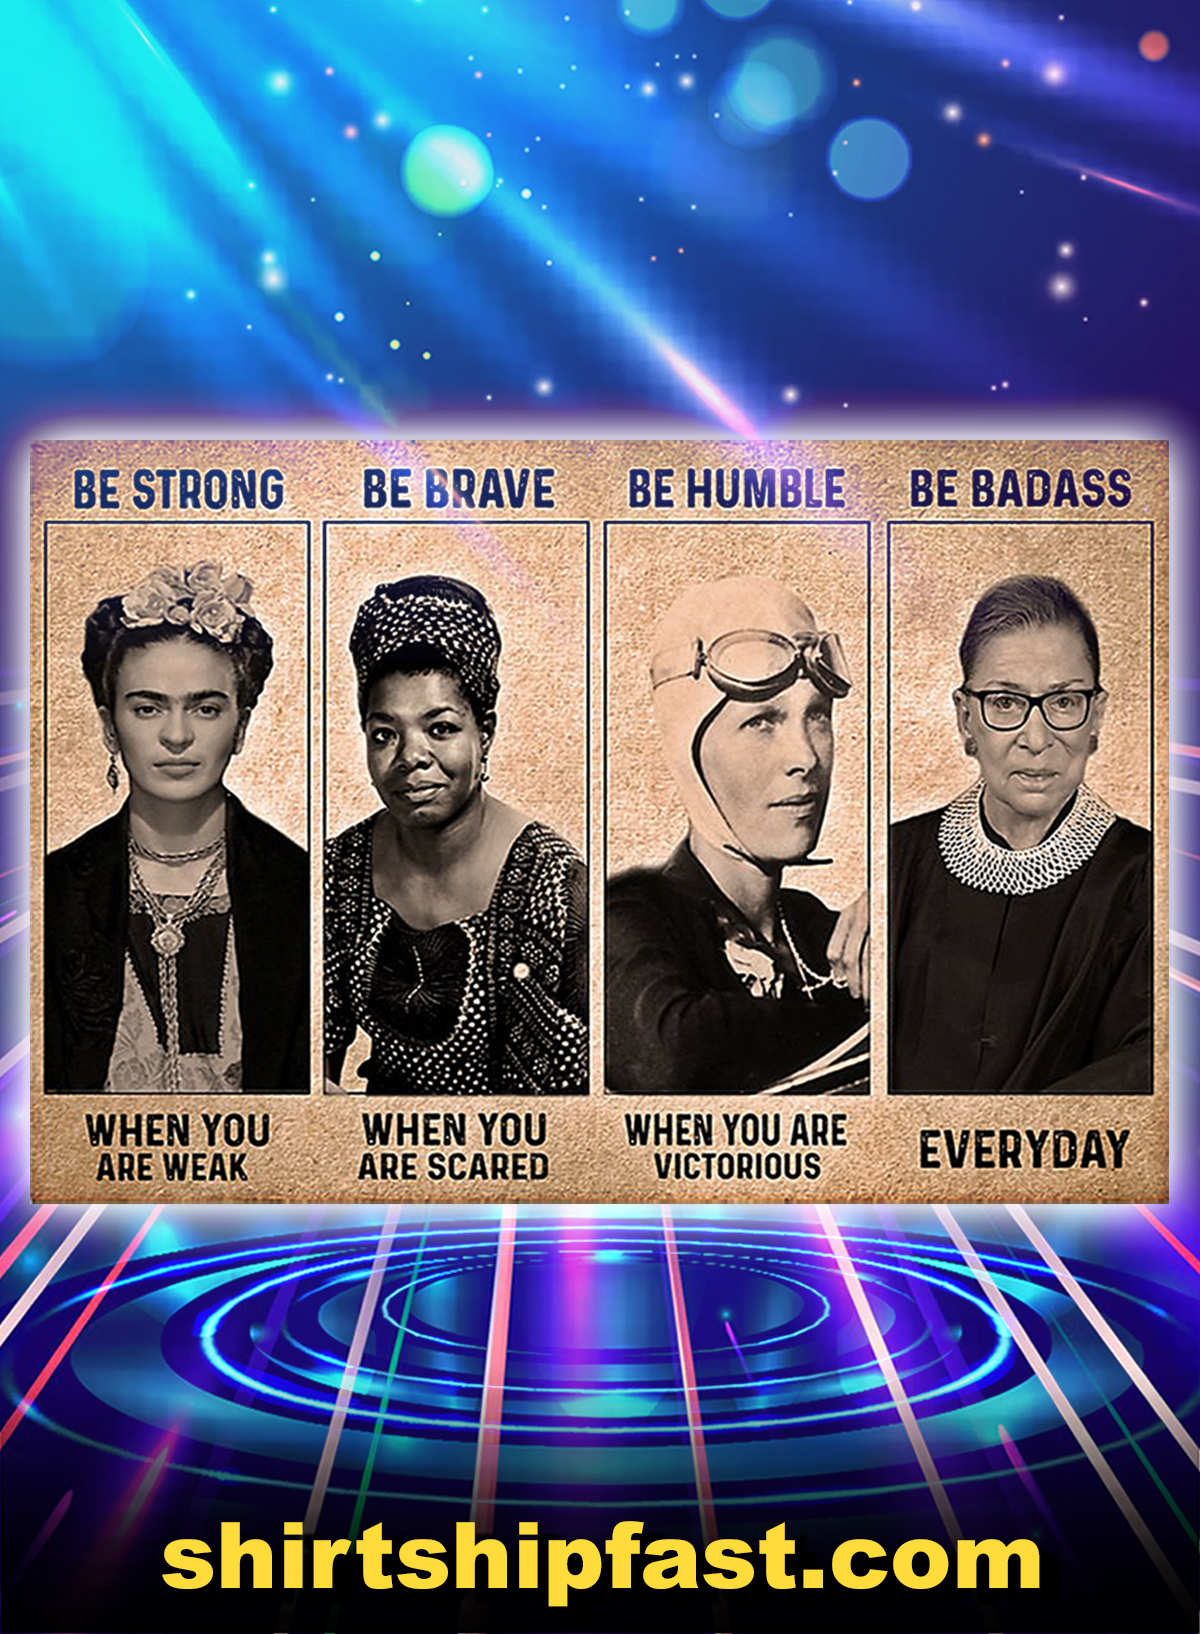 RBG Frida Kahlo feminist be strong be brave be humble be badass poster - A1